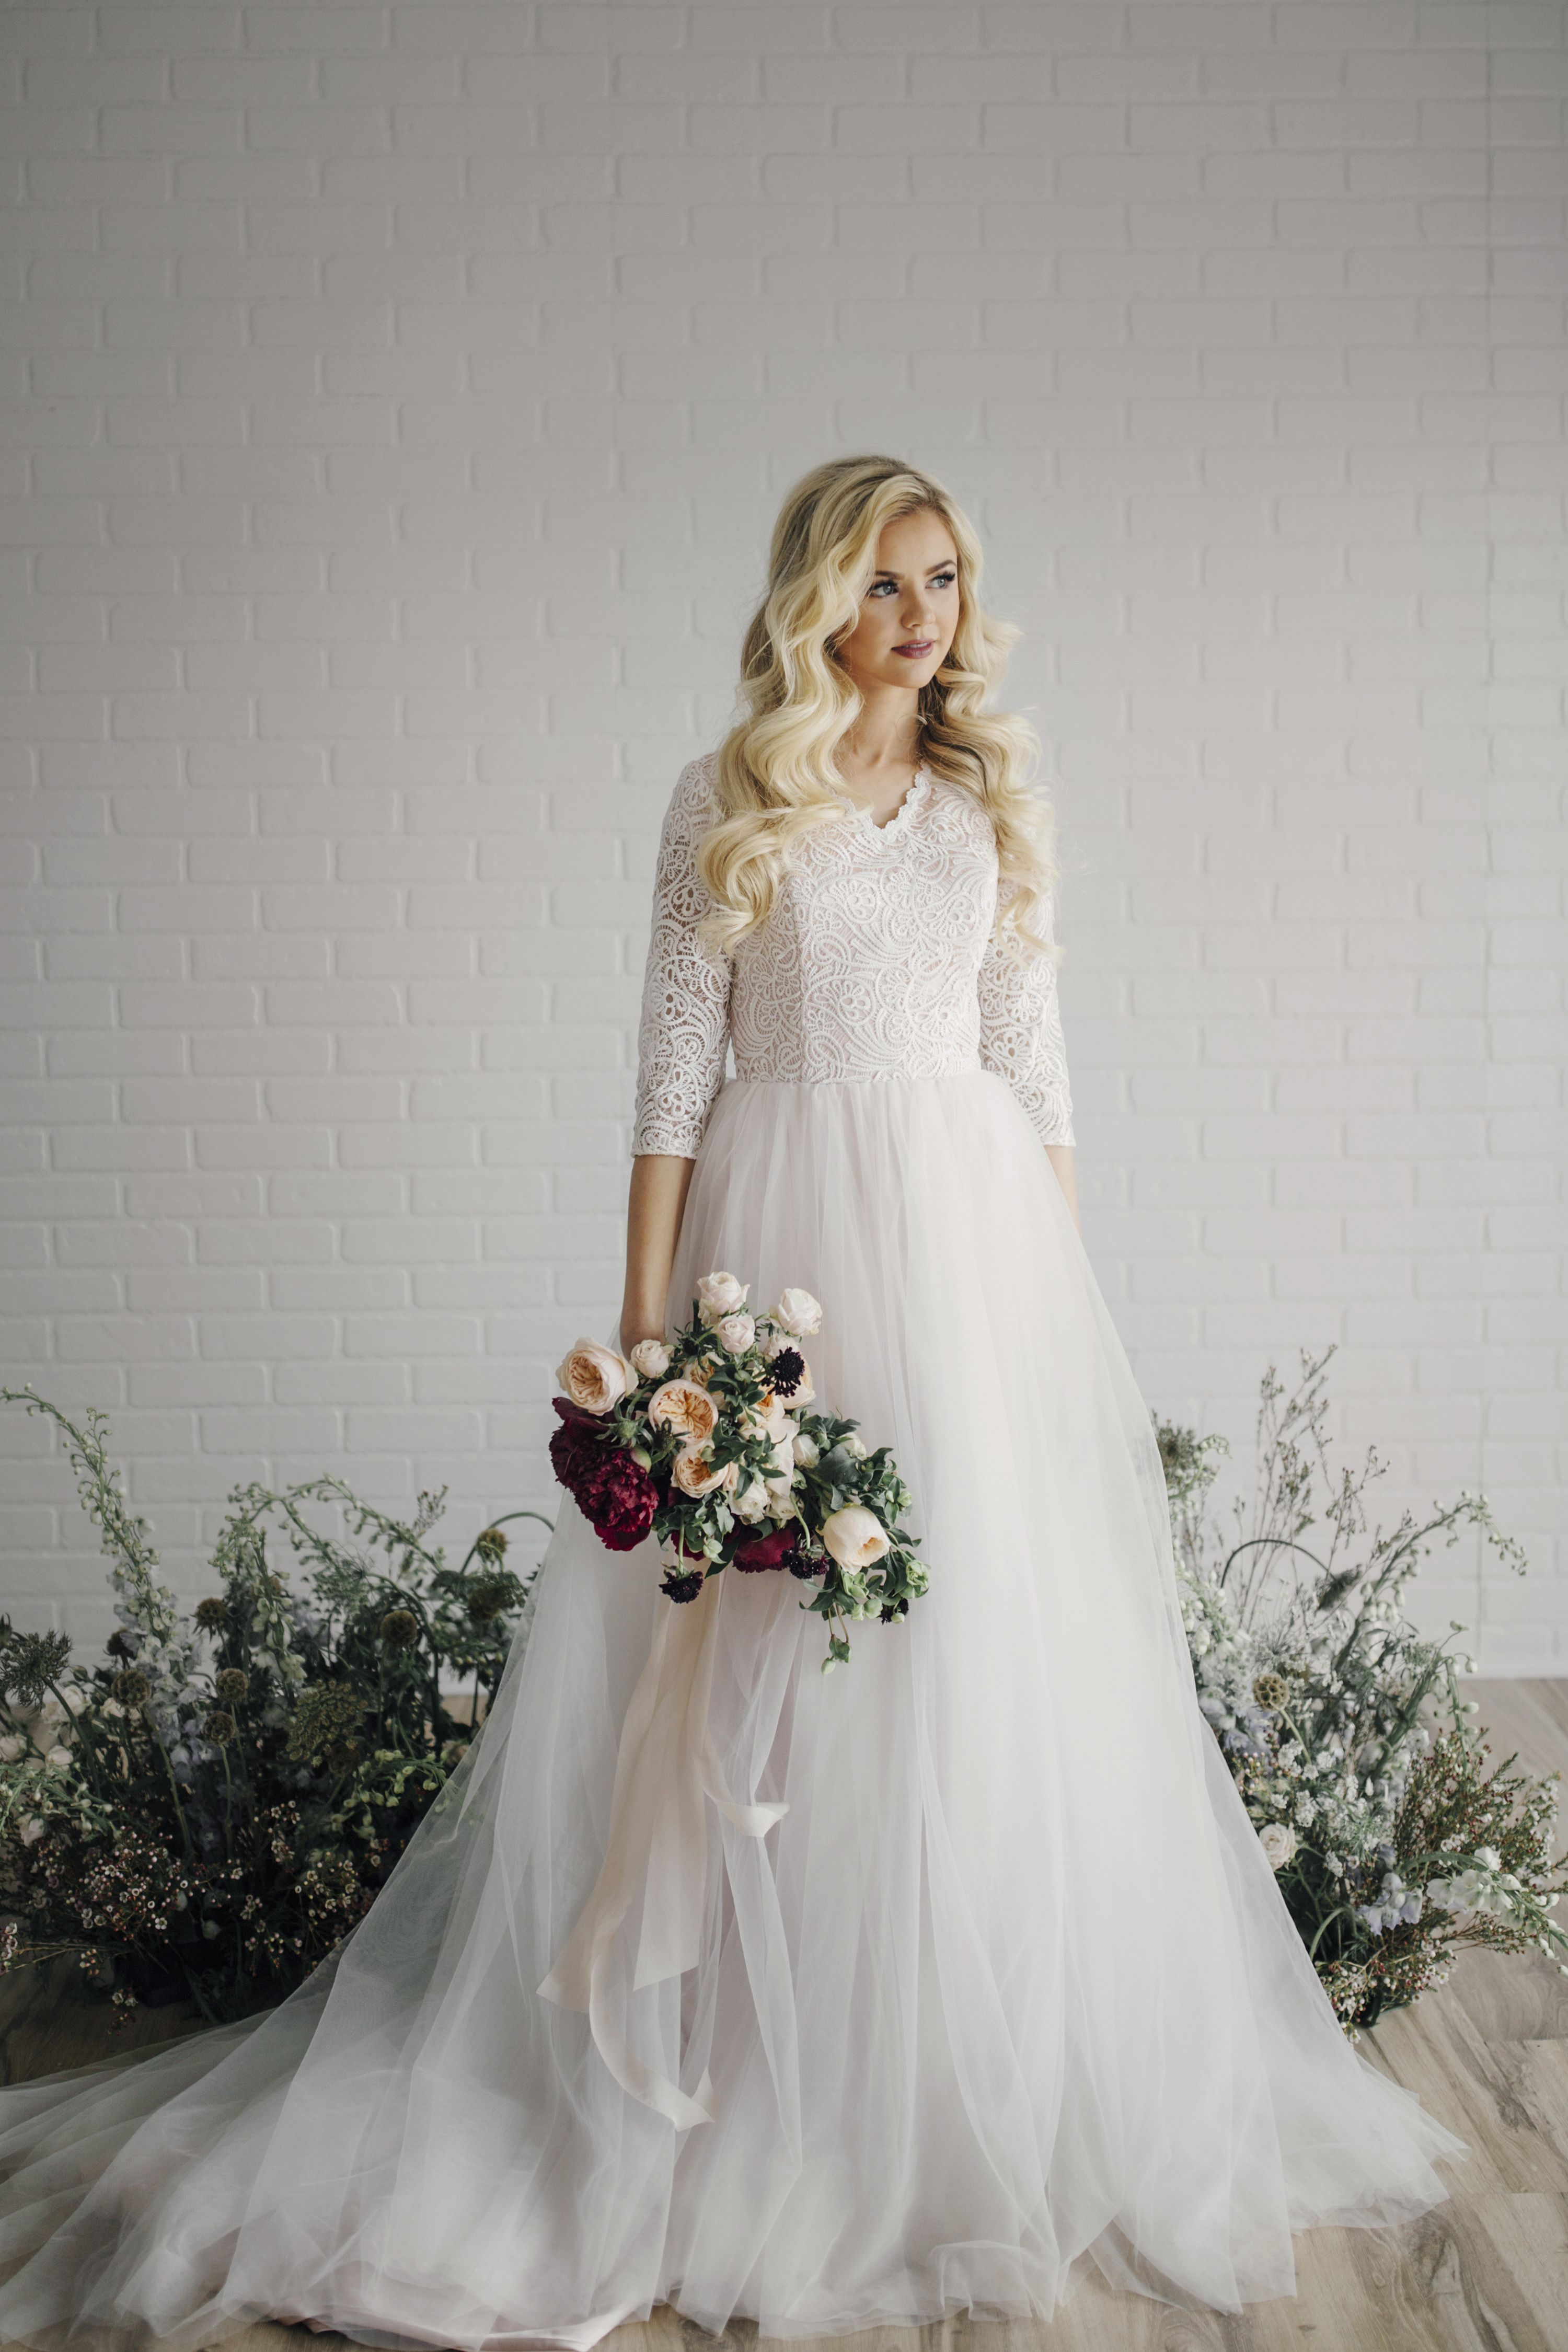 A Modest Wedding Doesn T Mean A Frumpy Wedding Beauty Tips And A Free Ebook Here Http Modest Wedding Dresses Wedding Dress Shopping Affordable Wedding Gown [ 4500 x 3000 Pixel ]